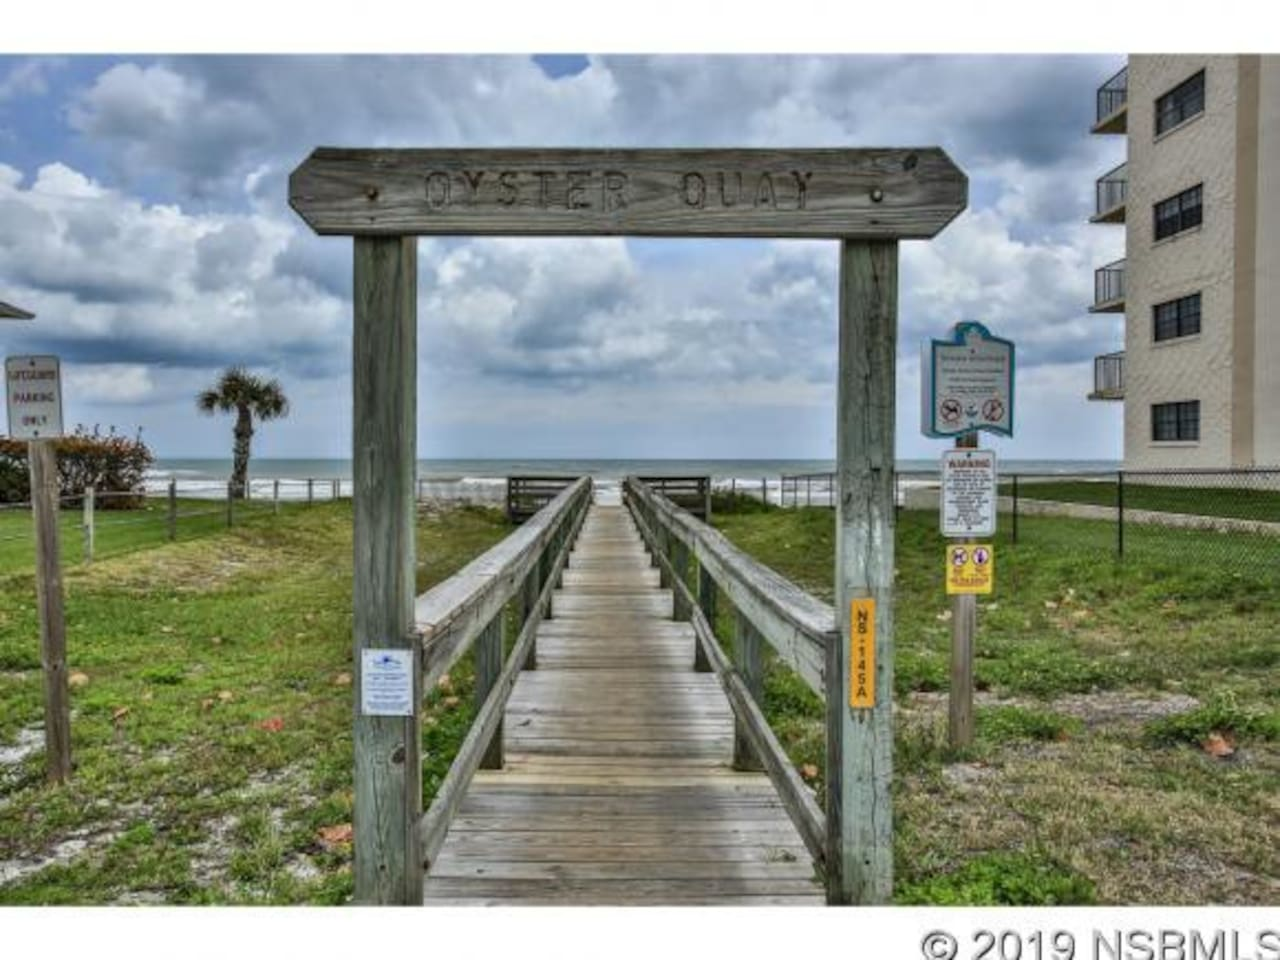 Home Is Only 1 Block From The Beach With Dedicated Path!